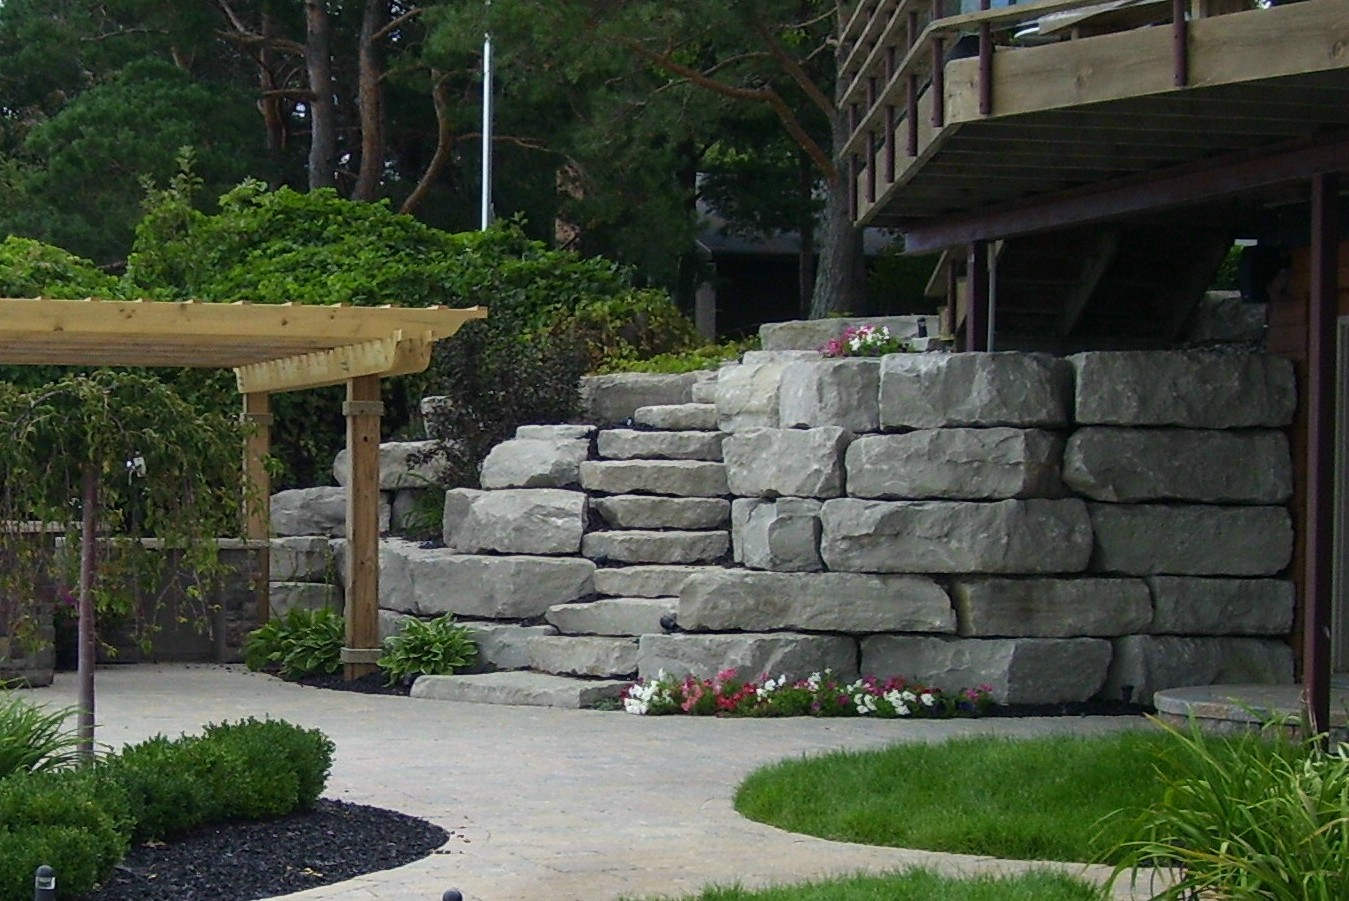 Limestone Boulder Stairway and Retaining Wall